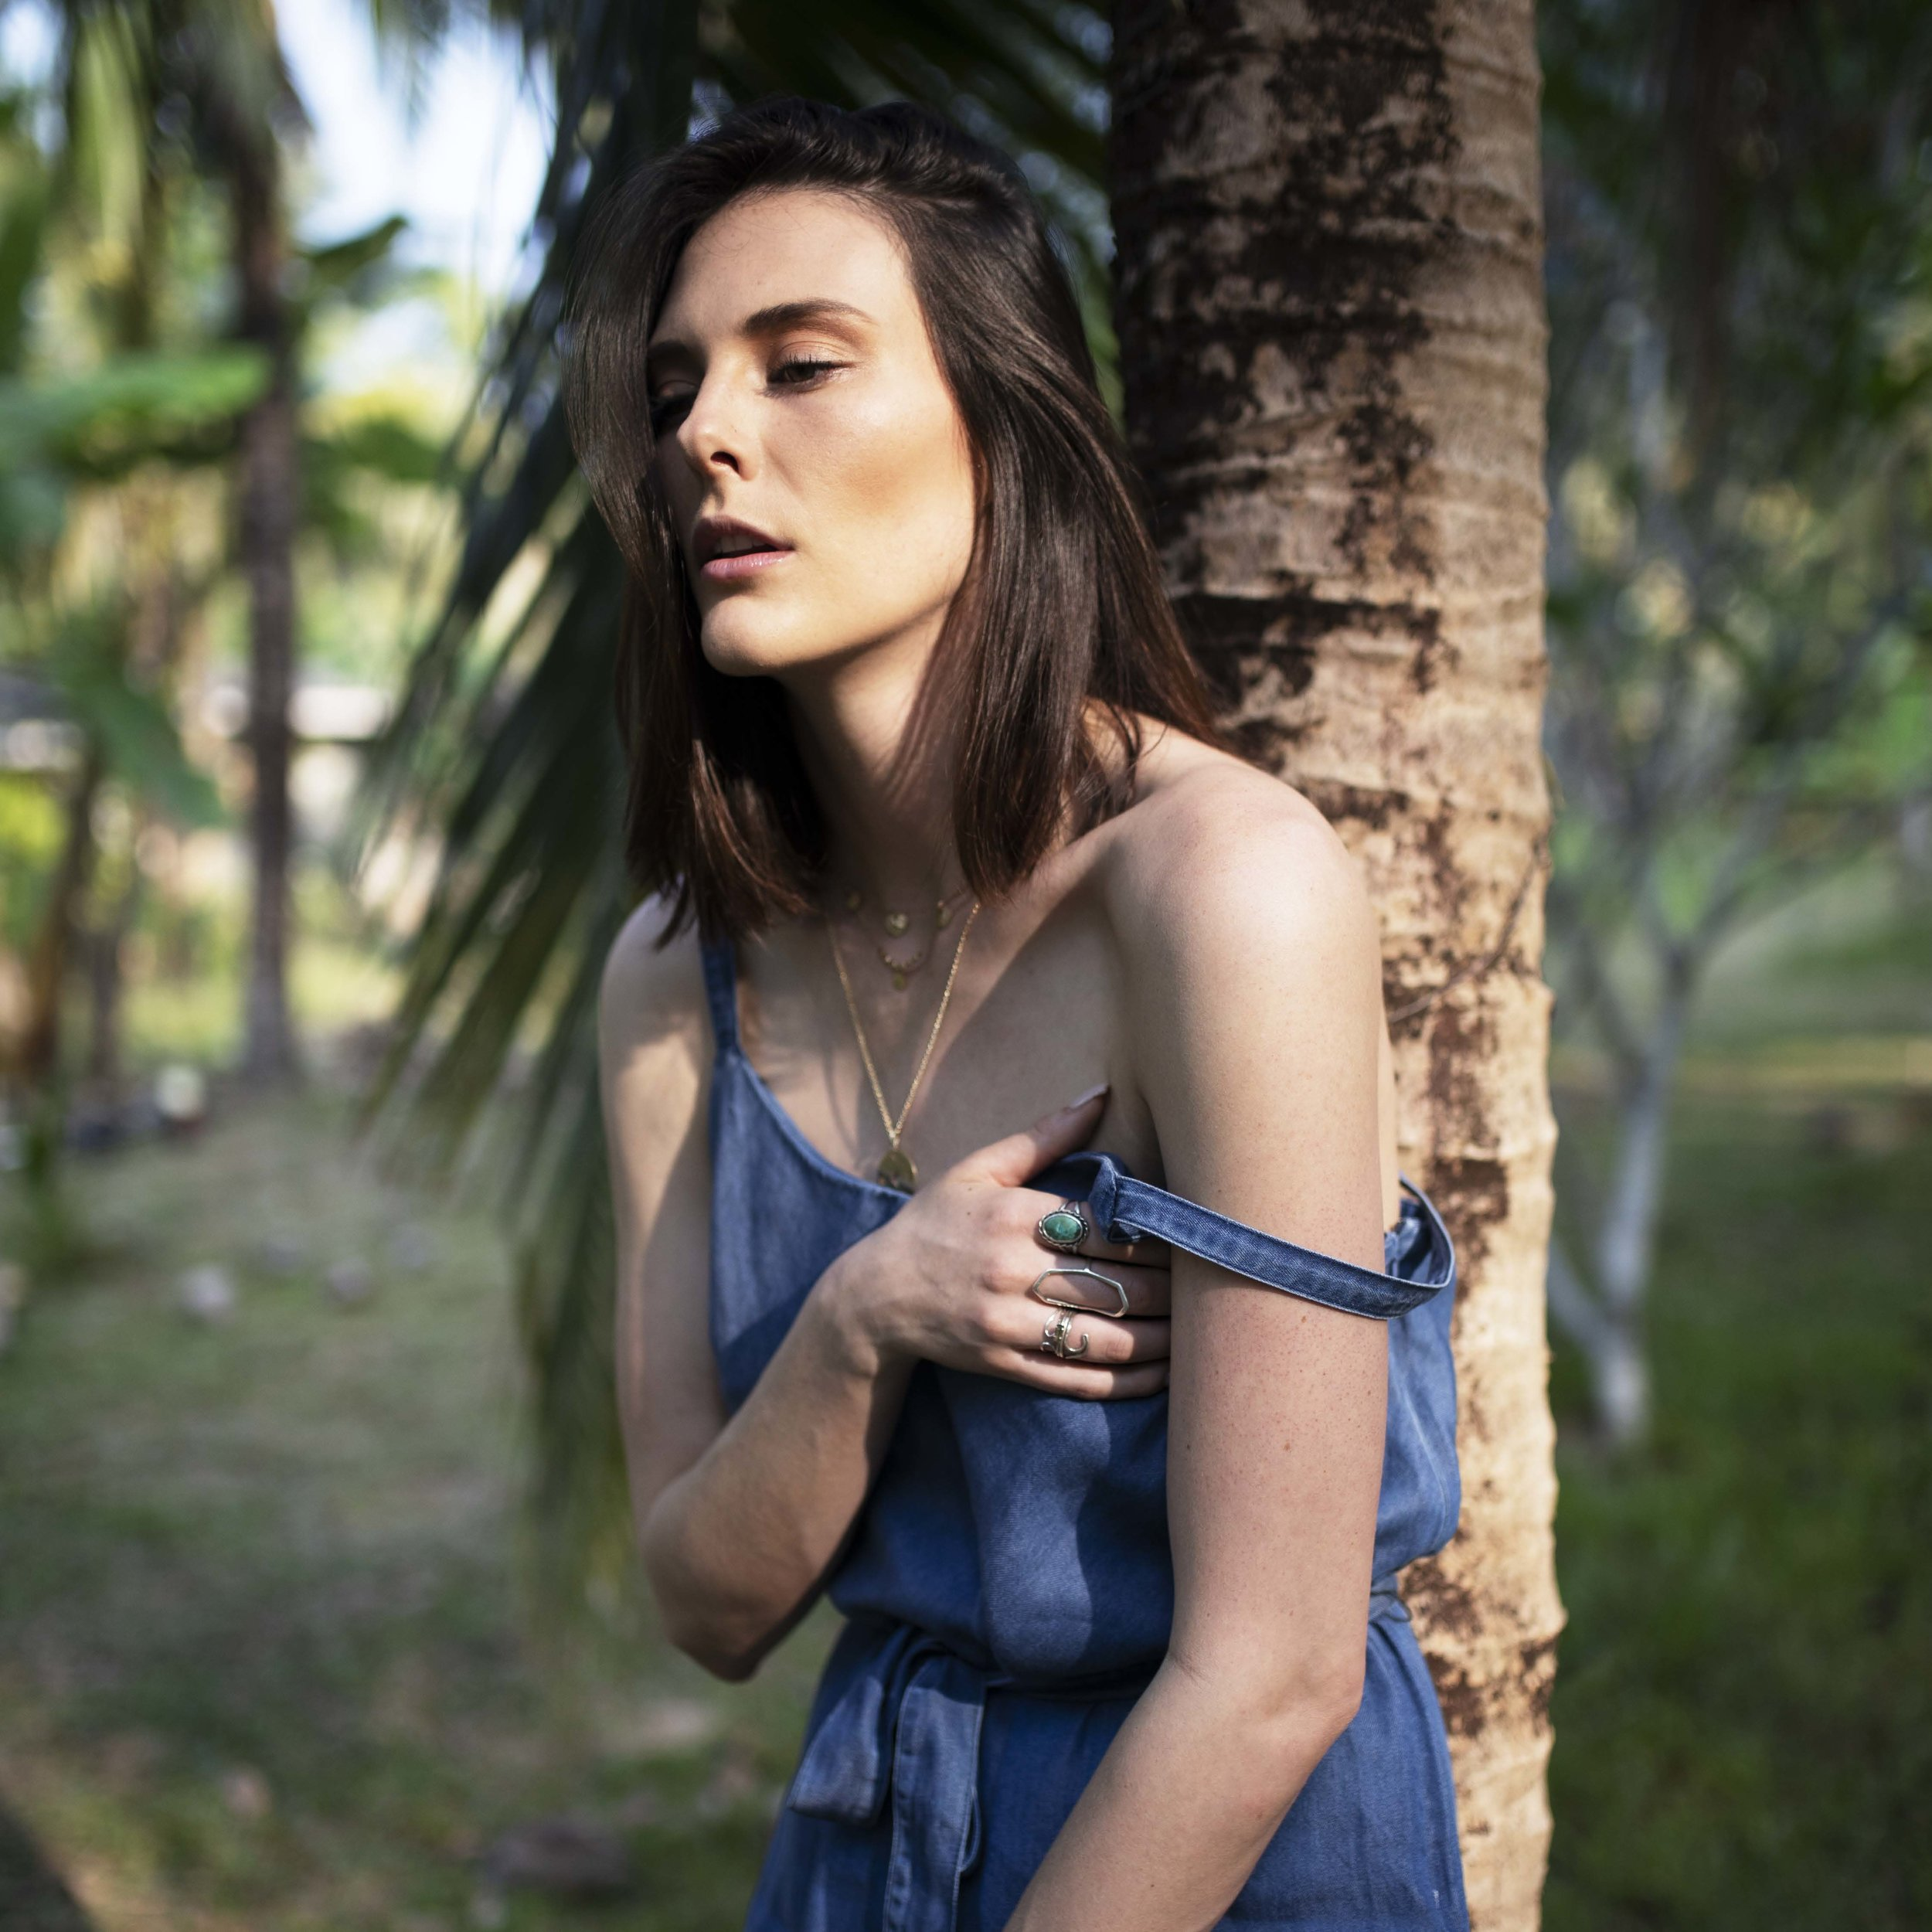 """""""MORNINGS IN THailand"""" for volant mag - Shot during our trip in Thailand, this series is included in the """"botanical"""" issue of Volant Magazine. Shot by MORE Talent photographer Ashley Joanna.Check It Out!"""